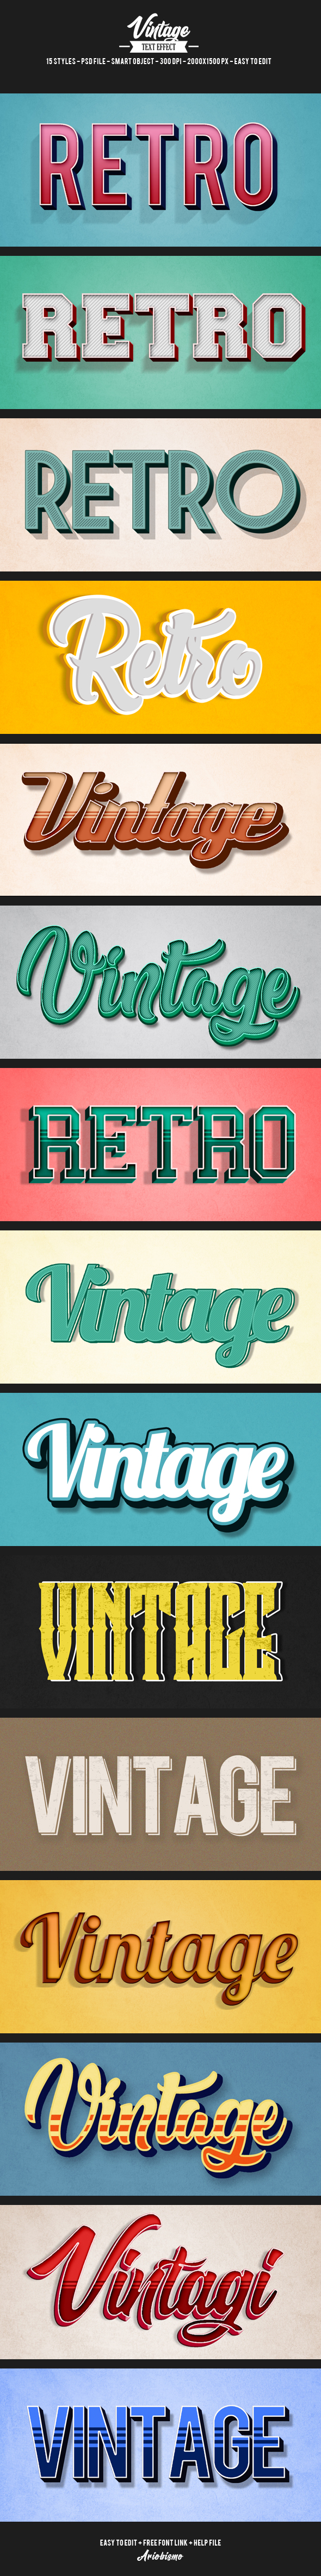 15 Retro Vintage Text Effects - Text Effects Actions